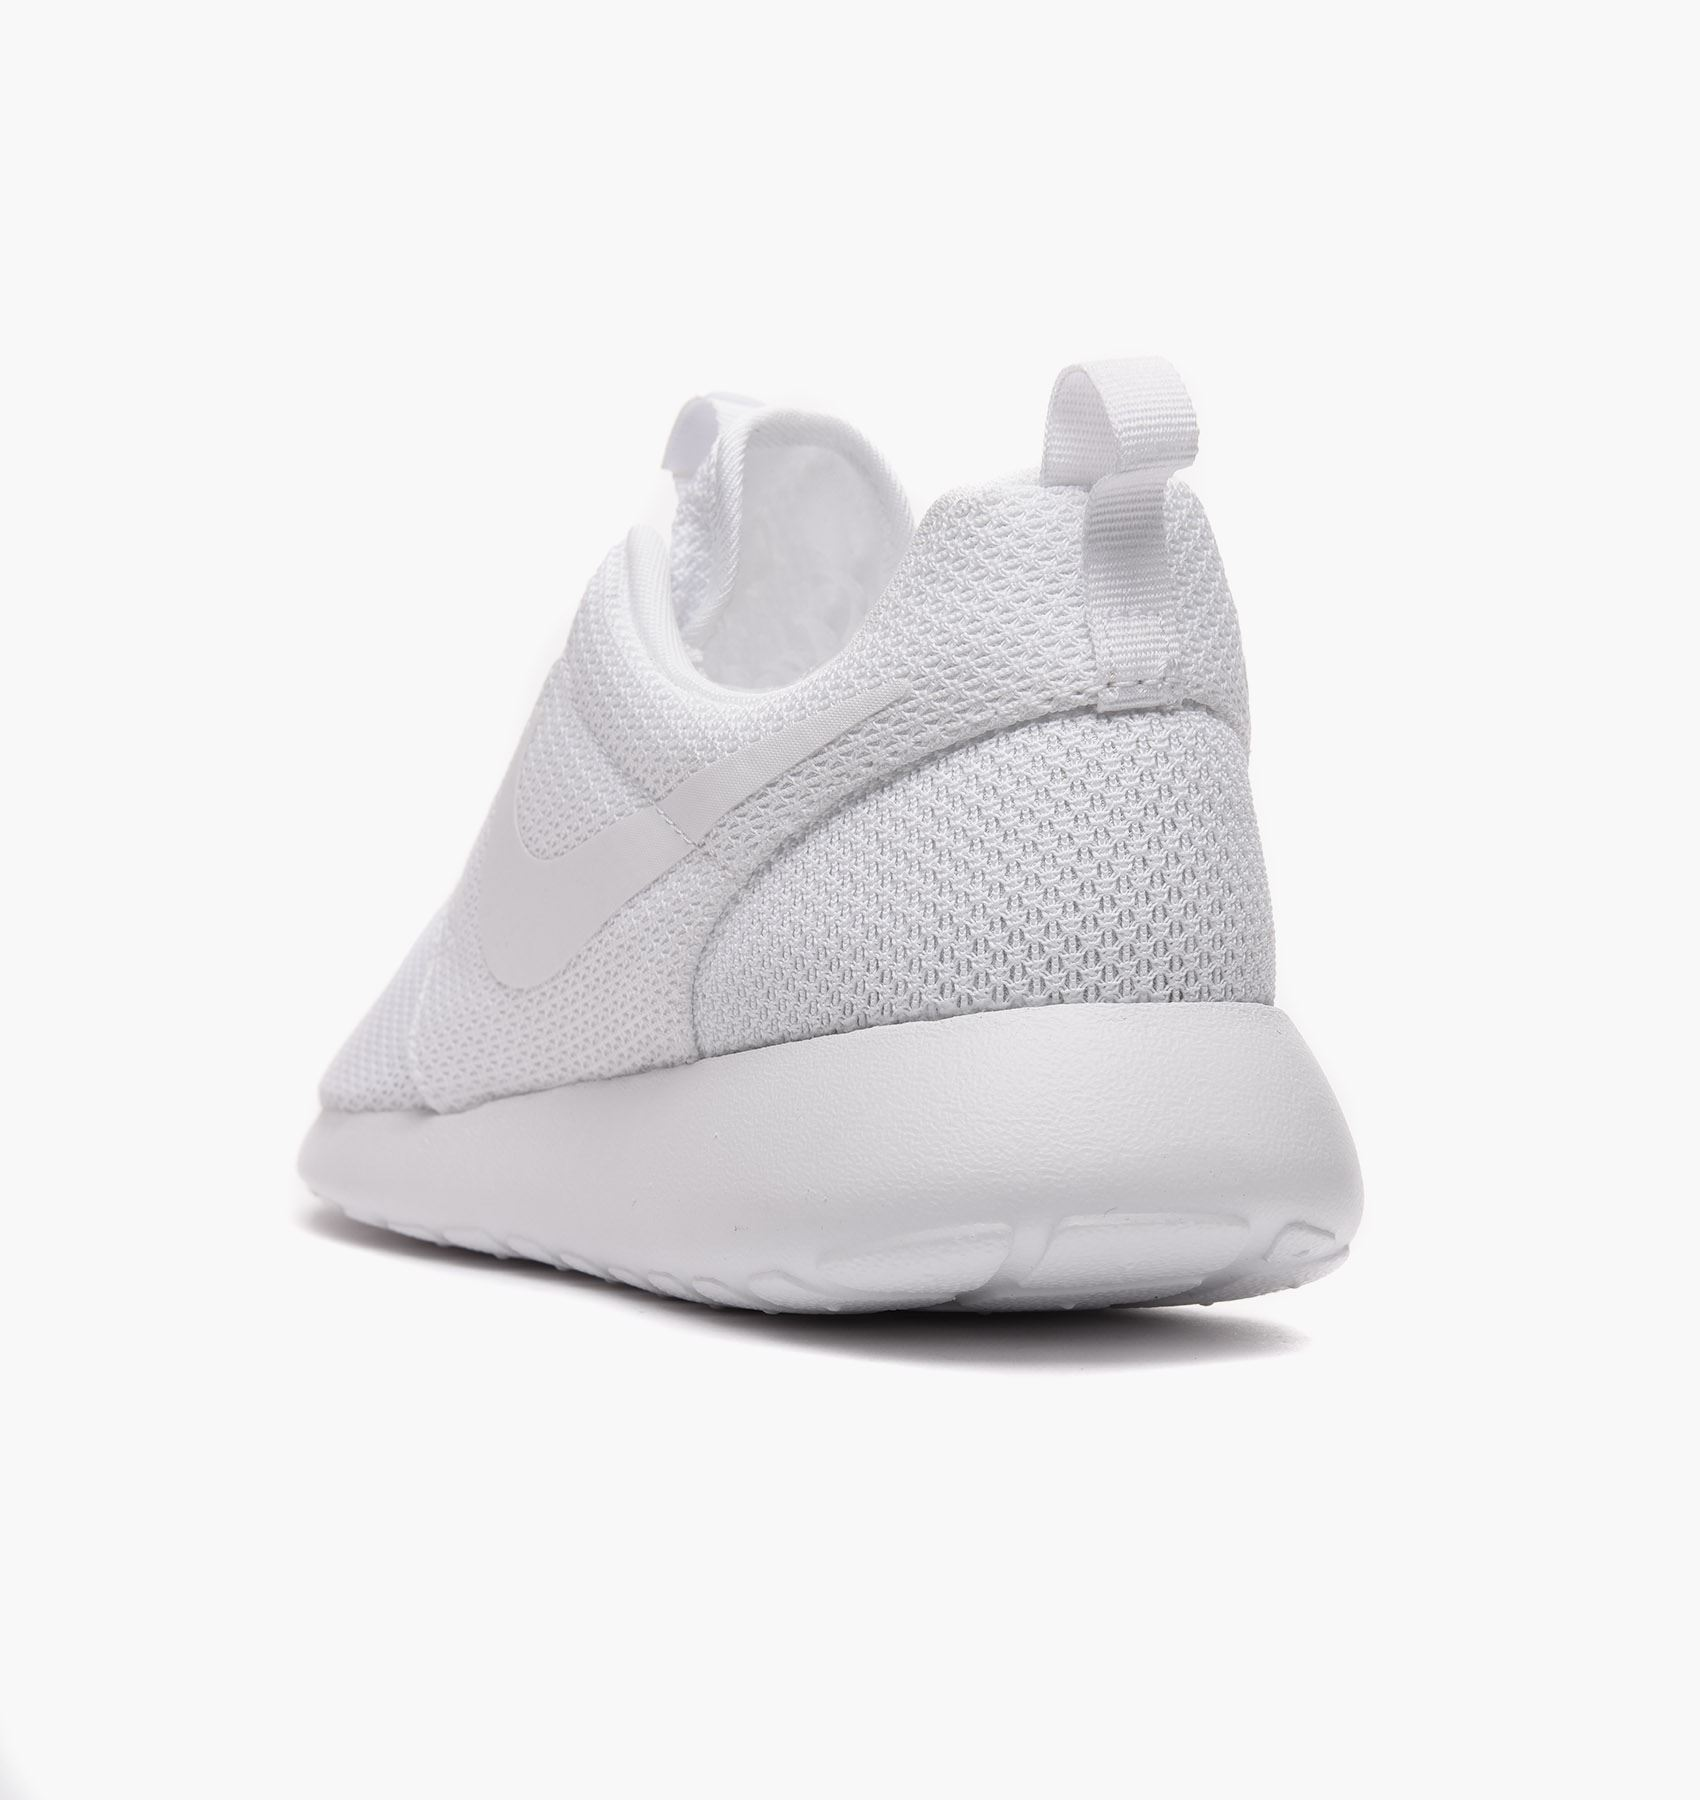 Nike Roshe One 511881112, Basket 45 EU